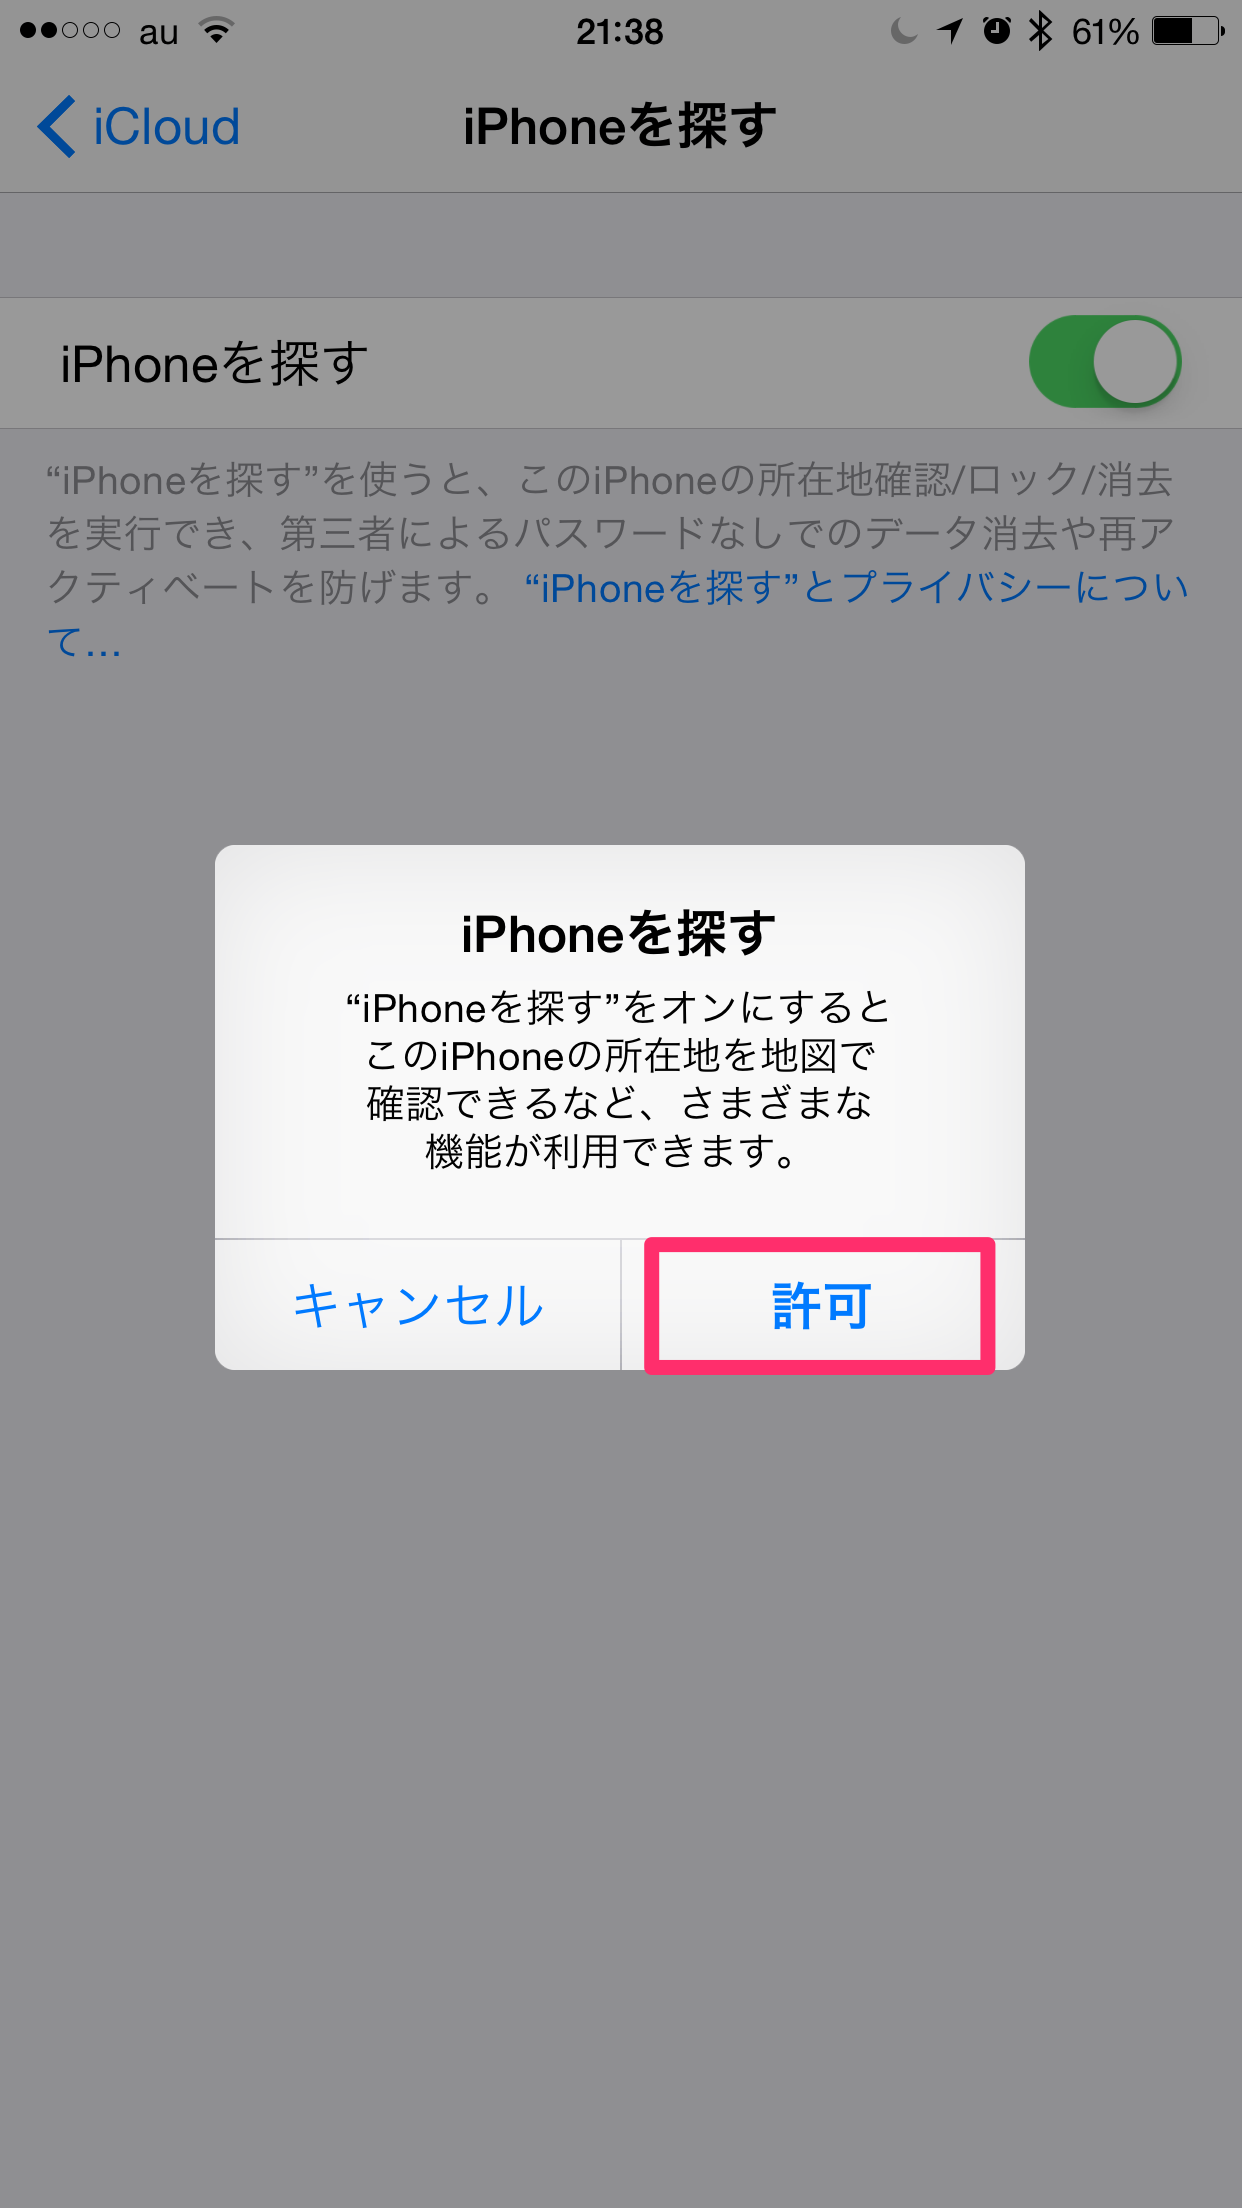 find my iphone log in iphone紛失時に必ず役立つ iphoneを探す の使い方 fatherlog 7836